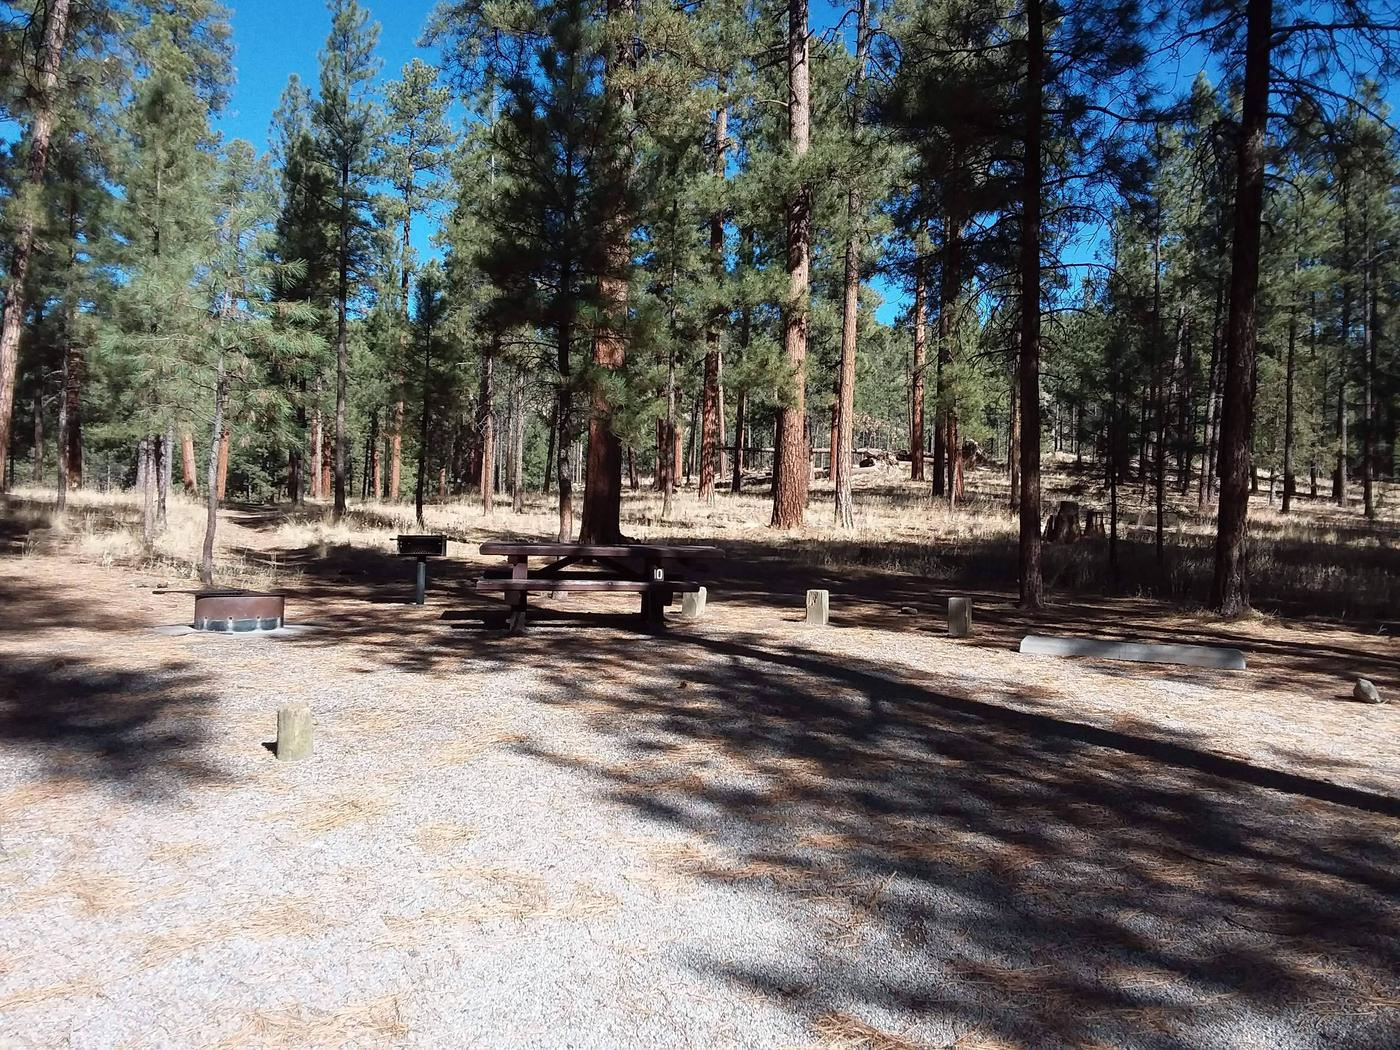 Large pines and clear blue skies accompany site 10 and its fire pit, grill, and picnic table.Site 10